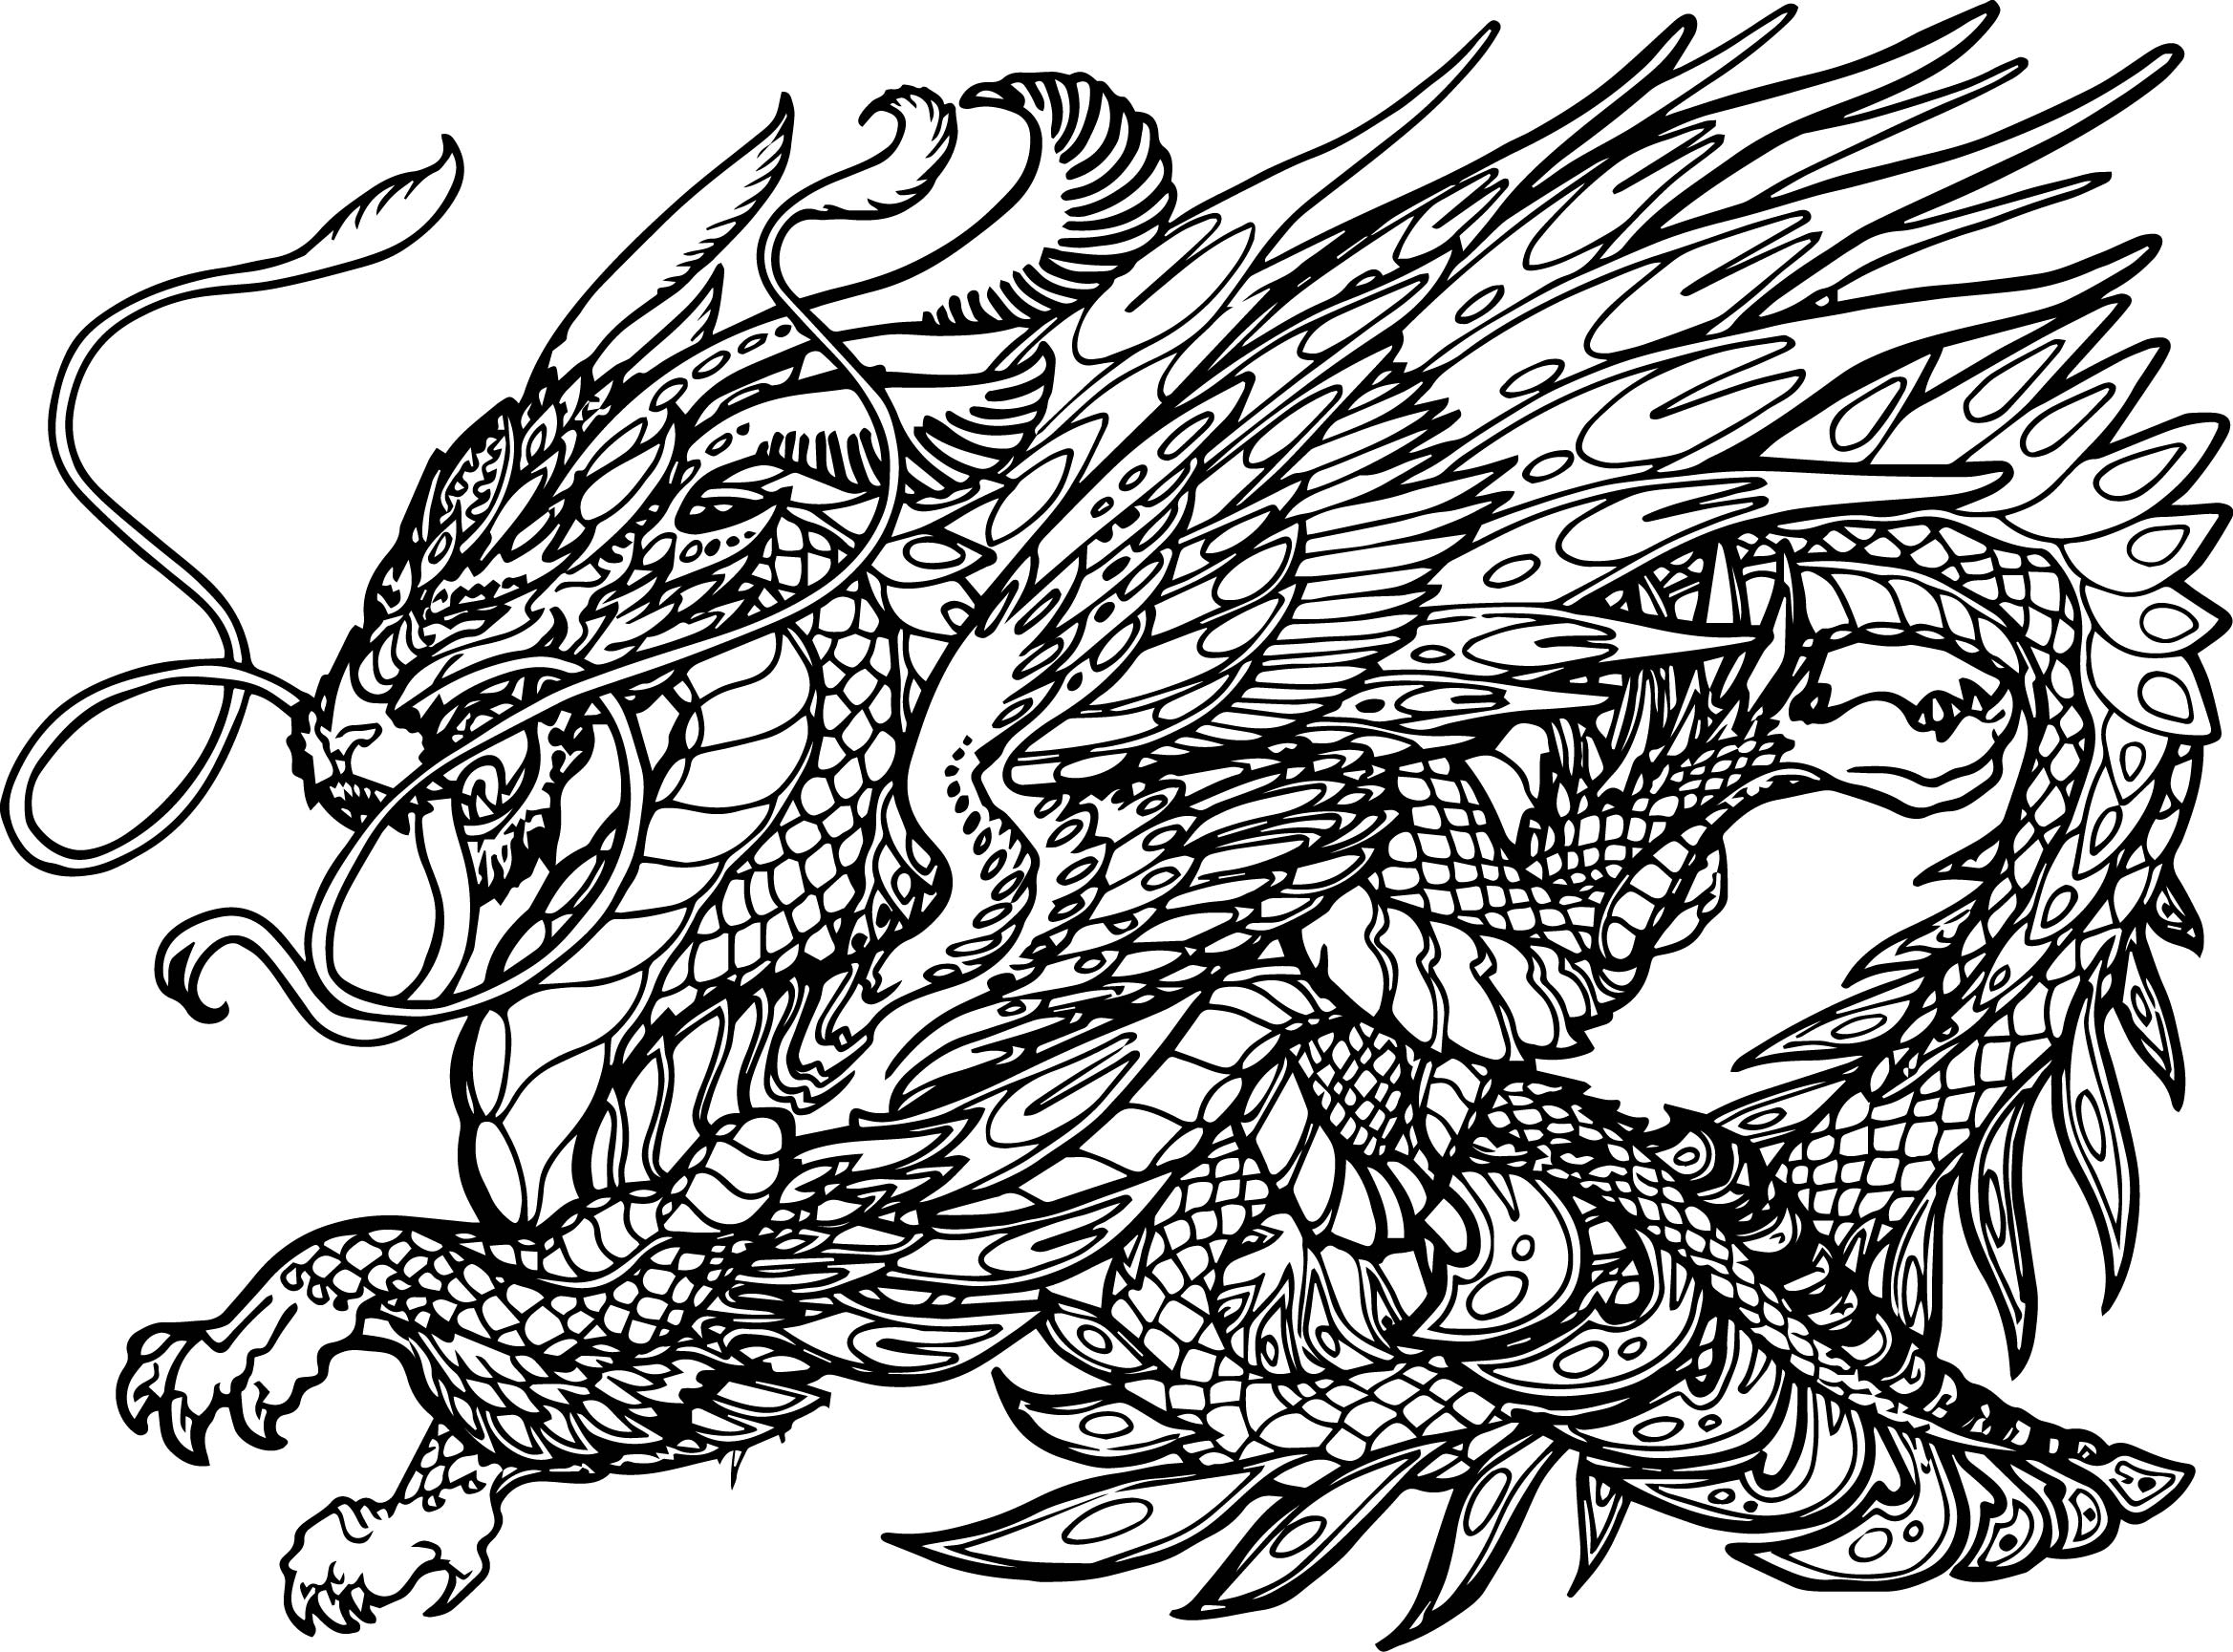 Hydra coloring #1, Download drawings